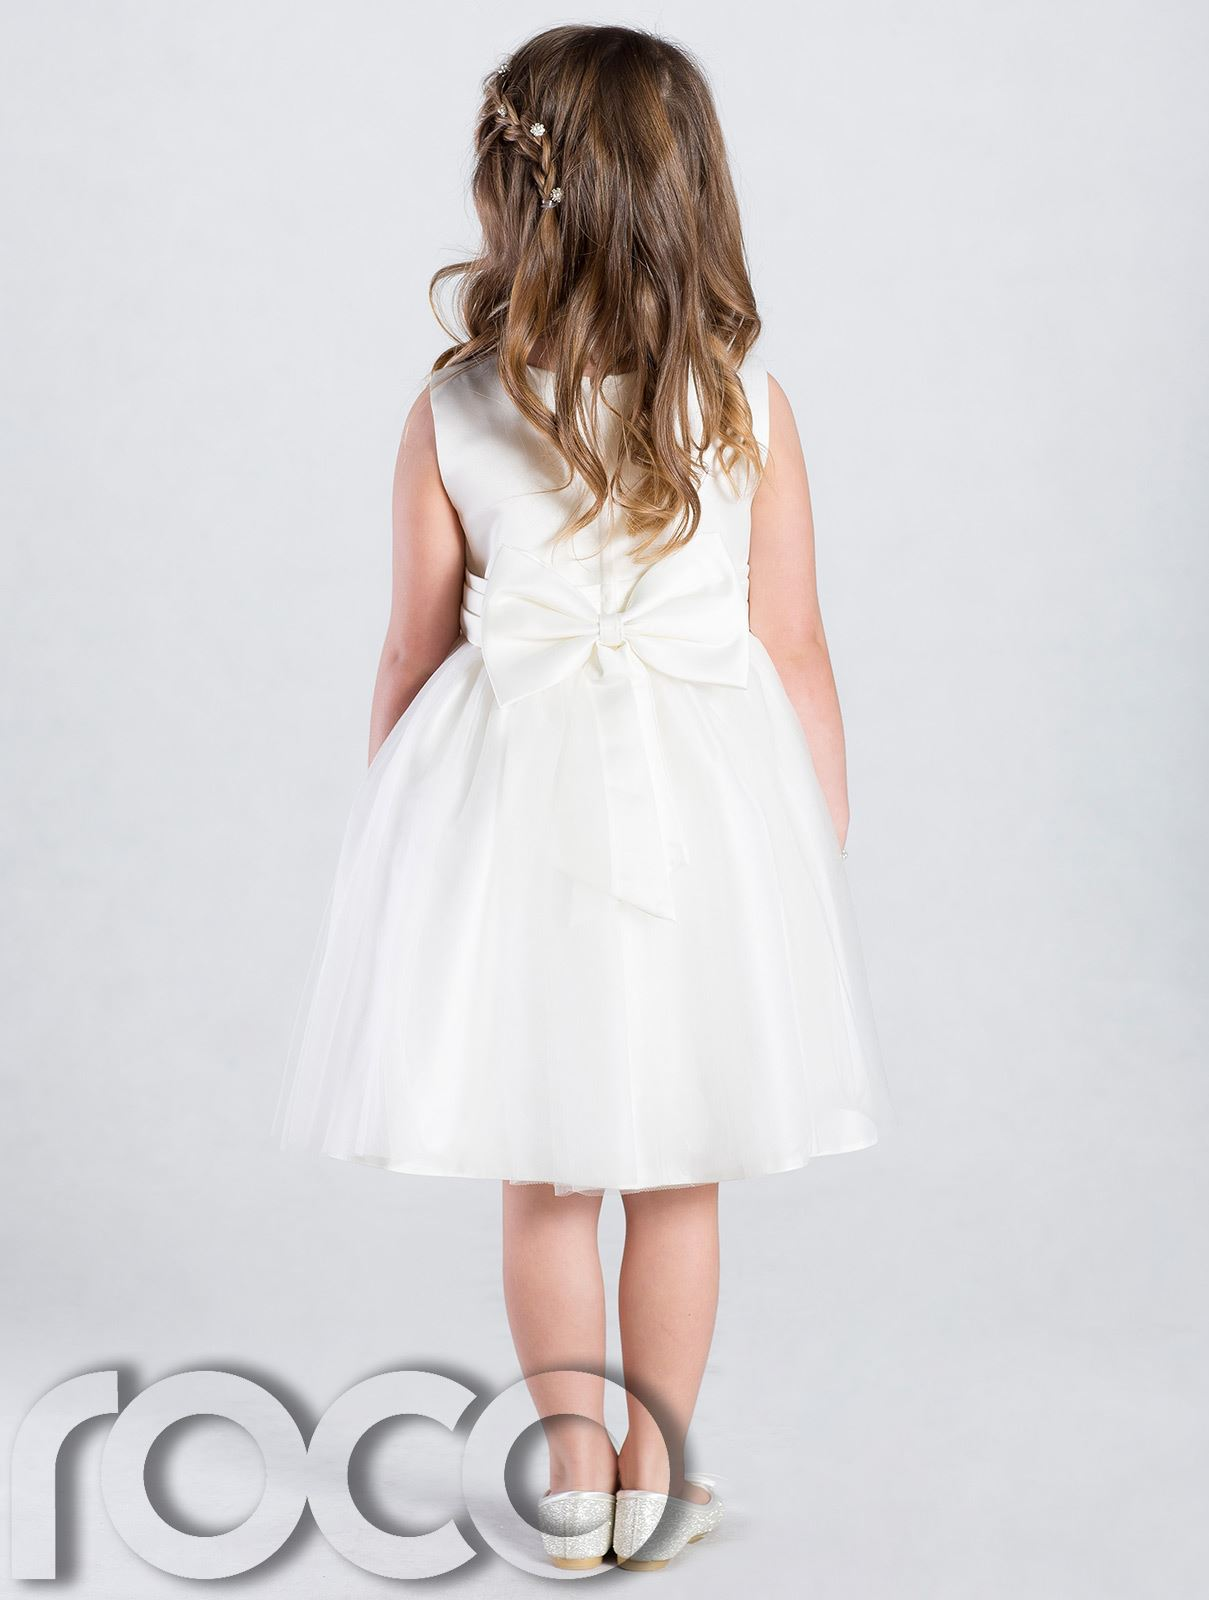 Ivory Flower Girl Dress Girls Bridesmaid Wedding Party Dresses munion Dress